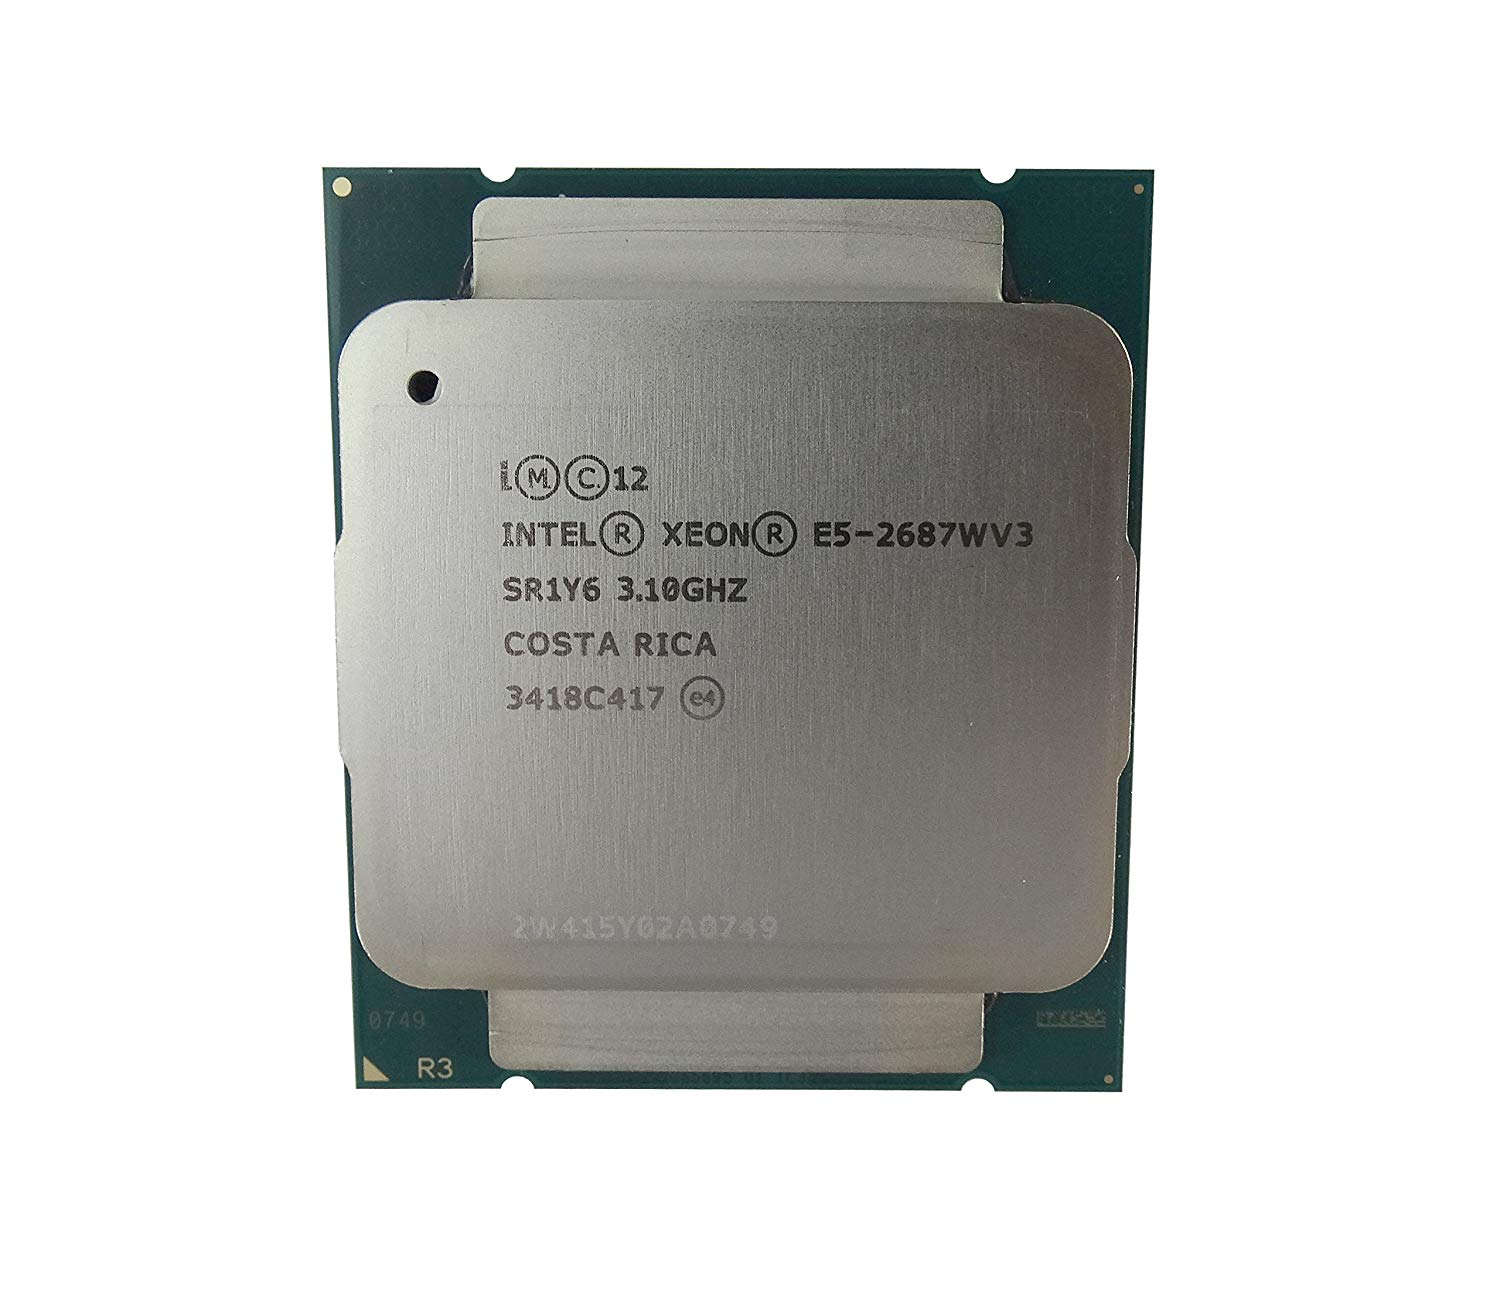 Intel Xeon E5-2687Wv3 Ten-Core Haswell 3.10GHz 9.6GT/s 25MB LGA 2011-v3 w/o Fan (SR1Y6) Server Processor